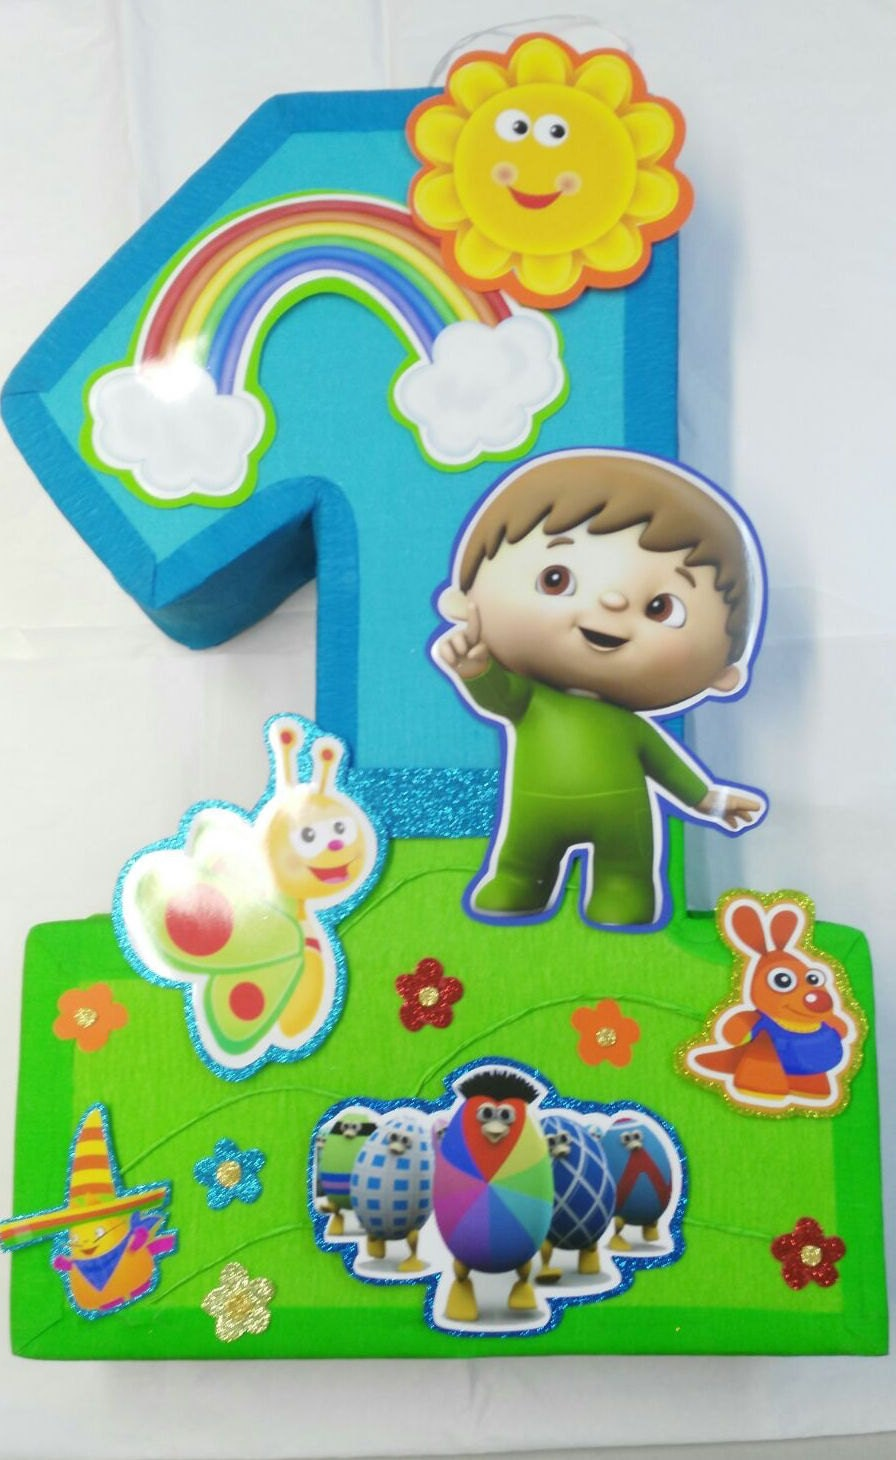 Violeta Glace Mesas Tematicas Baby Tv Birthday Decoration smartprosus